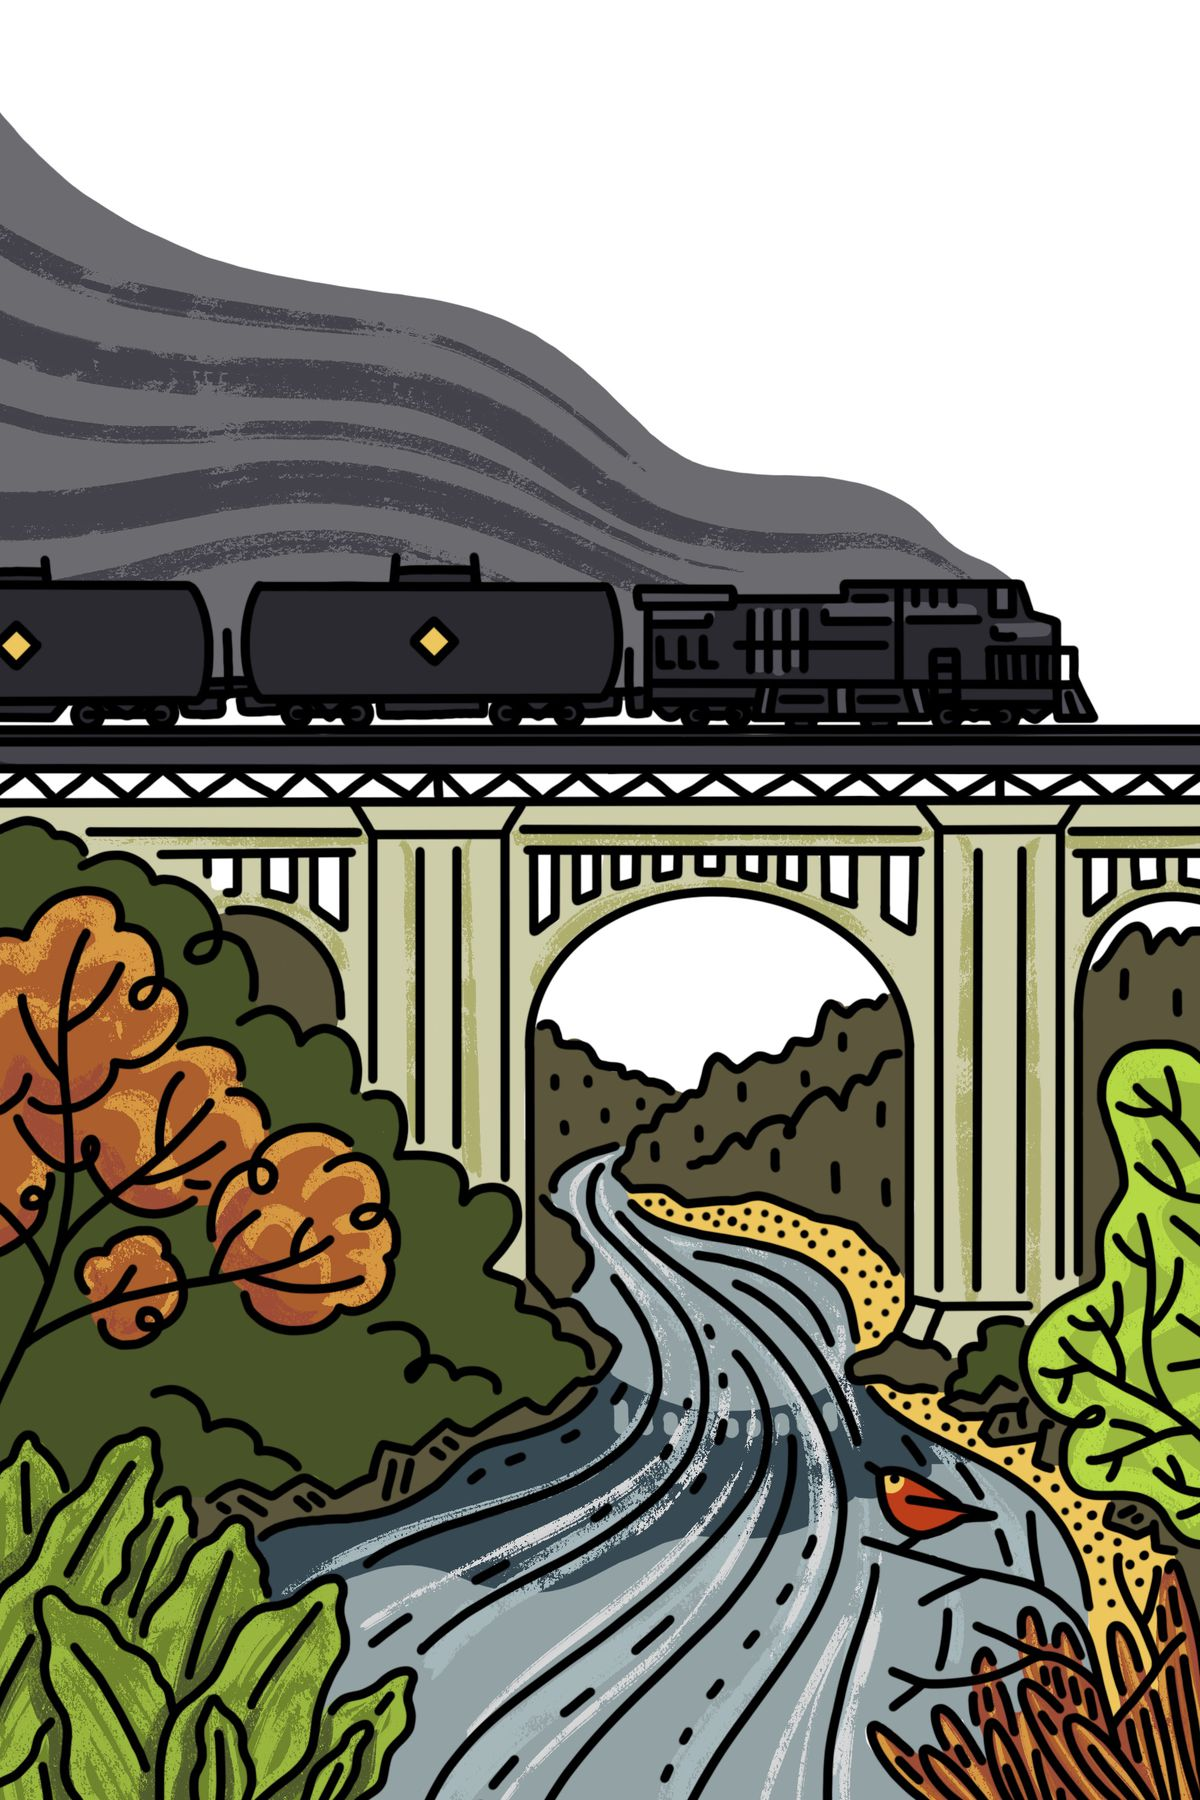 A train emitting a lot of smog and pollution travels on a bridge over a river. Illustration.